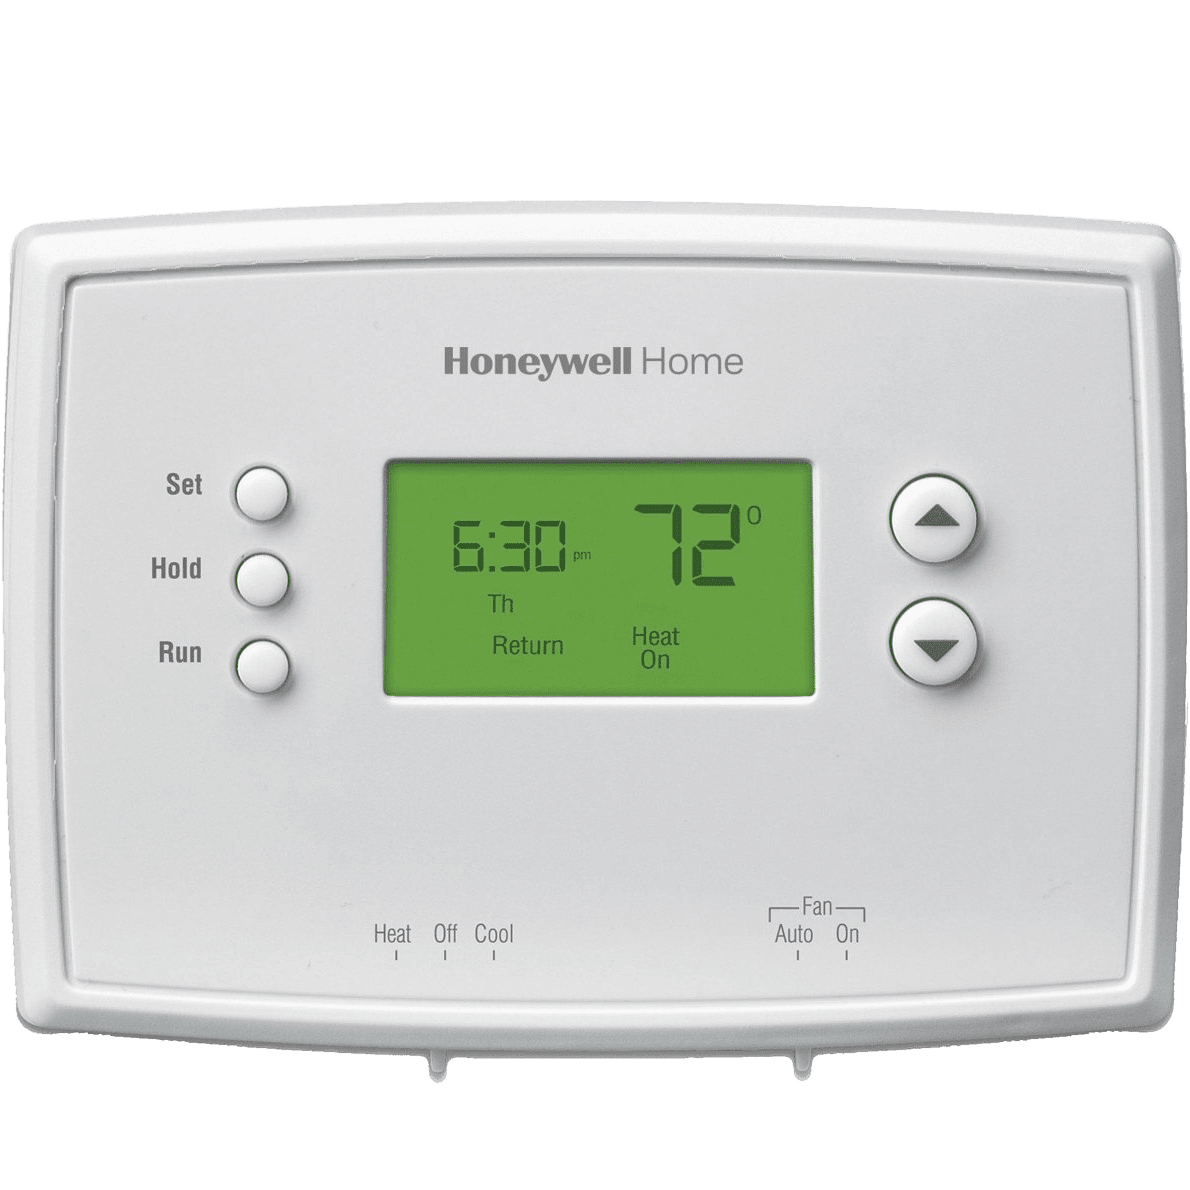 Wiring Diagram For Honeywell Thermostat Rth2300b : Honeywell rth b day programmable thermostat sylvane